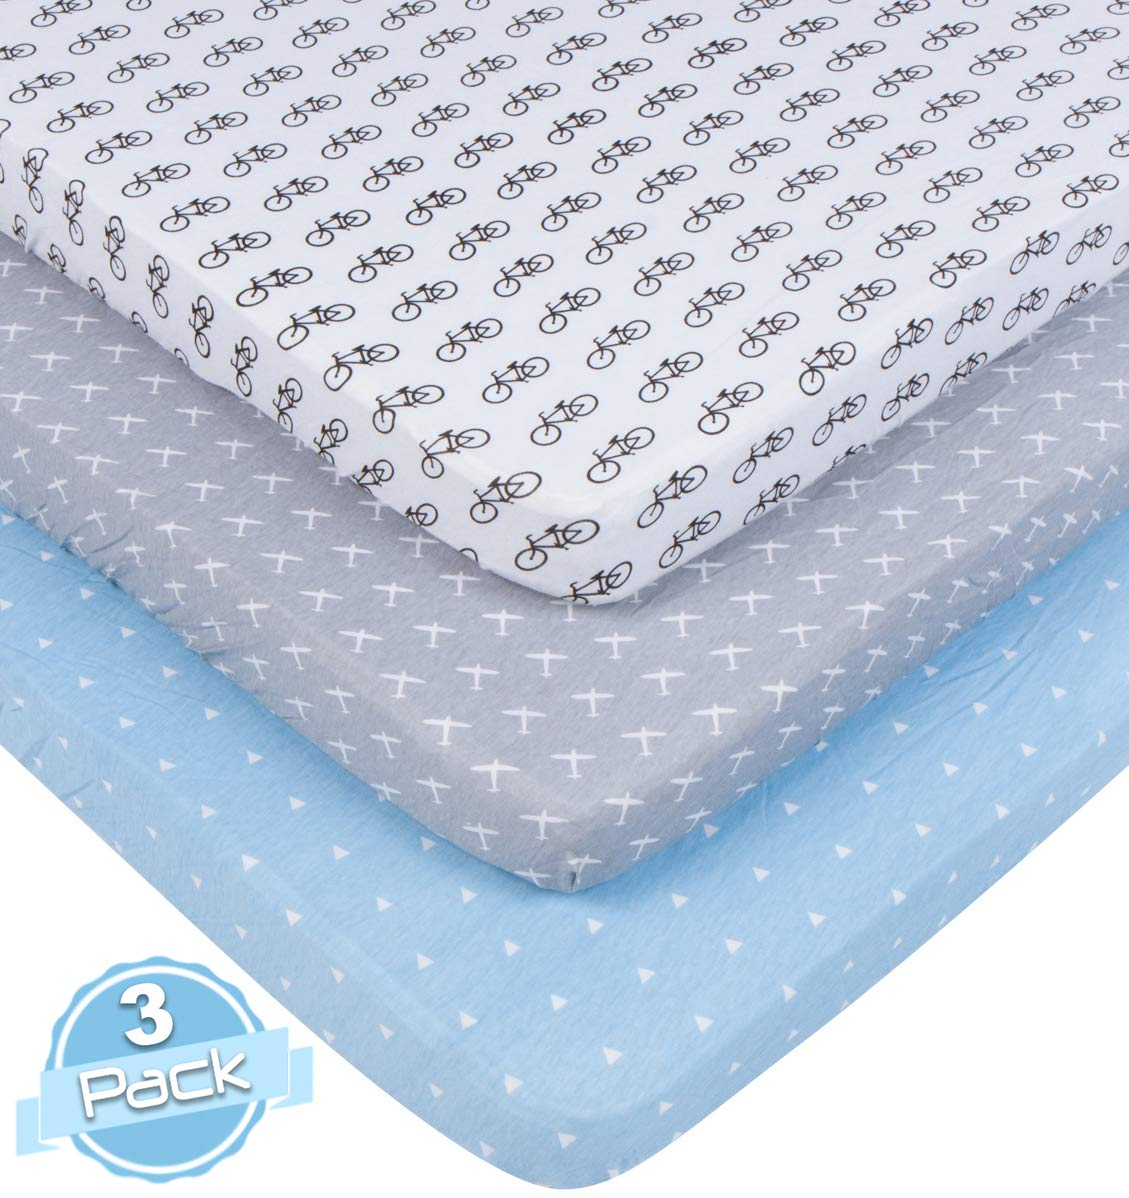 BaeBae Goods Pack n Play Playard Sheet Set | 3 Pack | 100% Super Soft Jersey Knit Cotton (150 GSM) | Portable Mini Crib Mattress Fitted Sheets for Boys & Girls BaeBae & Company